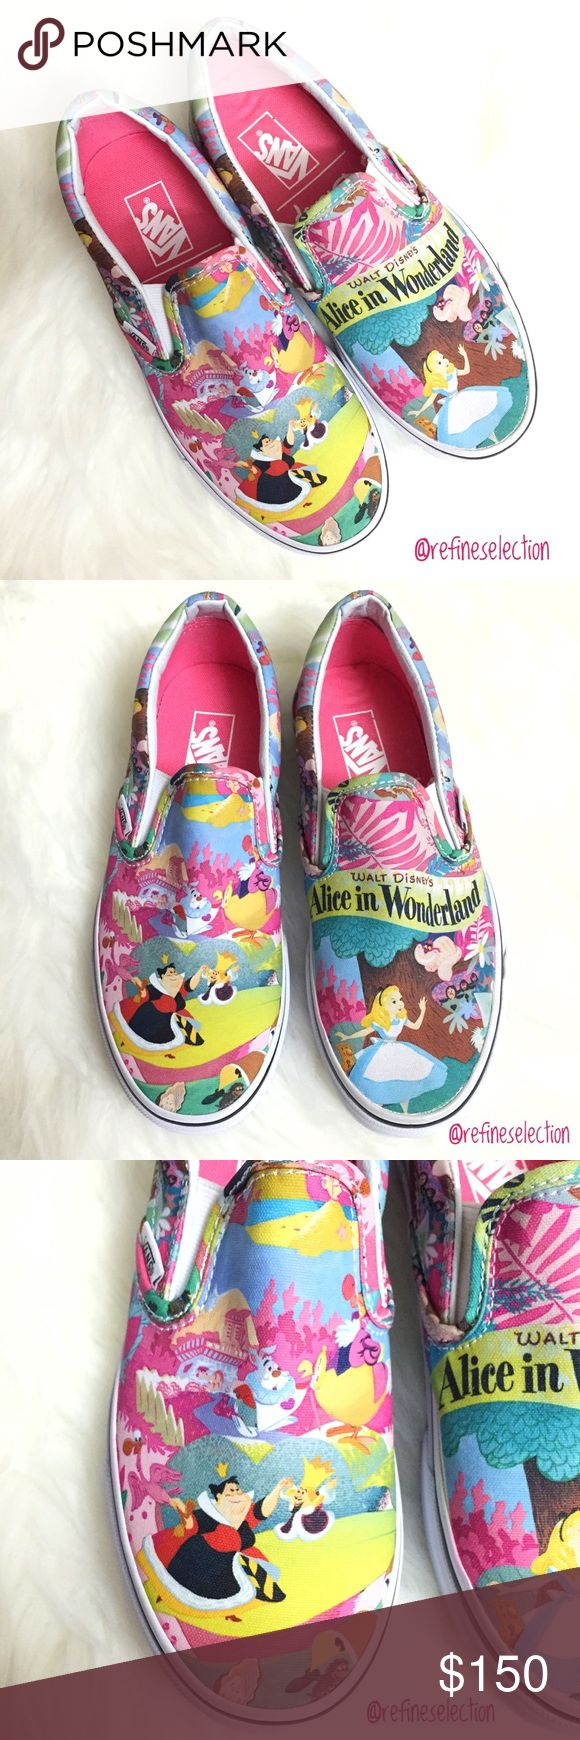 Disney Alice in Wonderland Slip On Sneakers Brand new in box, women's size 6. These Disney Alice in Wonderland Slip Ons are a must have for any Disney fan! A limited edition collaboration between Disney and Vans, this has been long sold out, this is your chance to own it here! There is so much detail all over! There is a light scuff mark on the bottom of the sole and on the front of the left shoe (as shown in the last pictures). The colors are also not as vibrant as shown in the pictures…